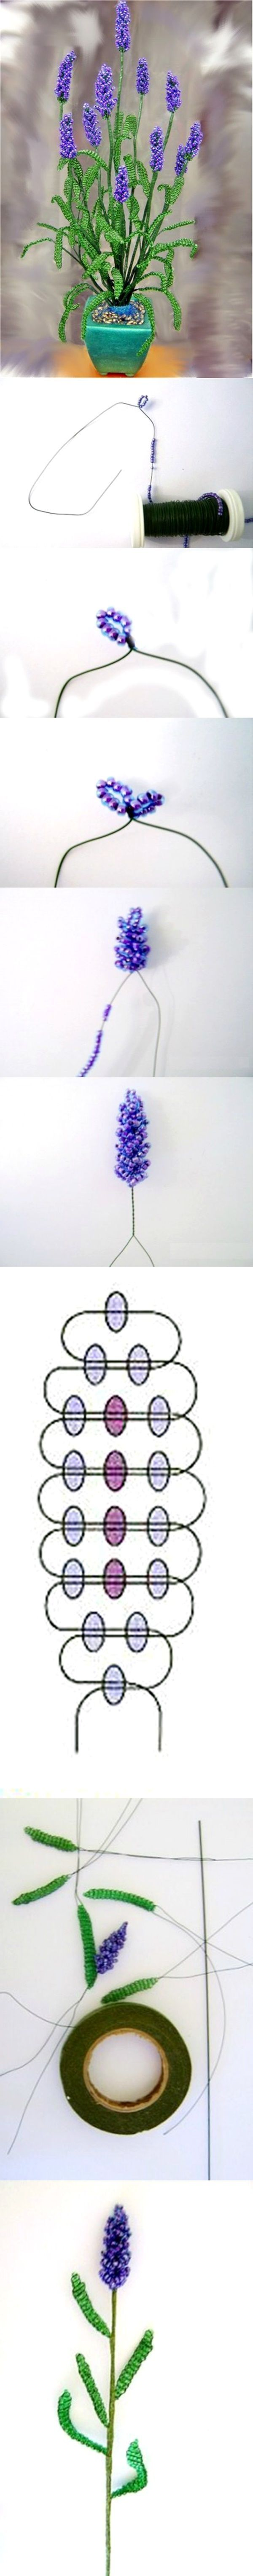 bead lavender tutorial by Lensia